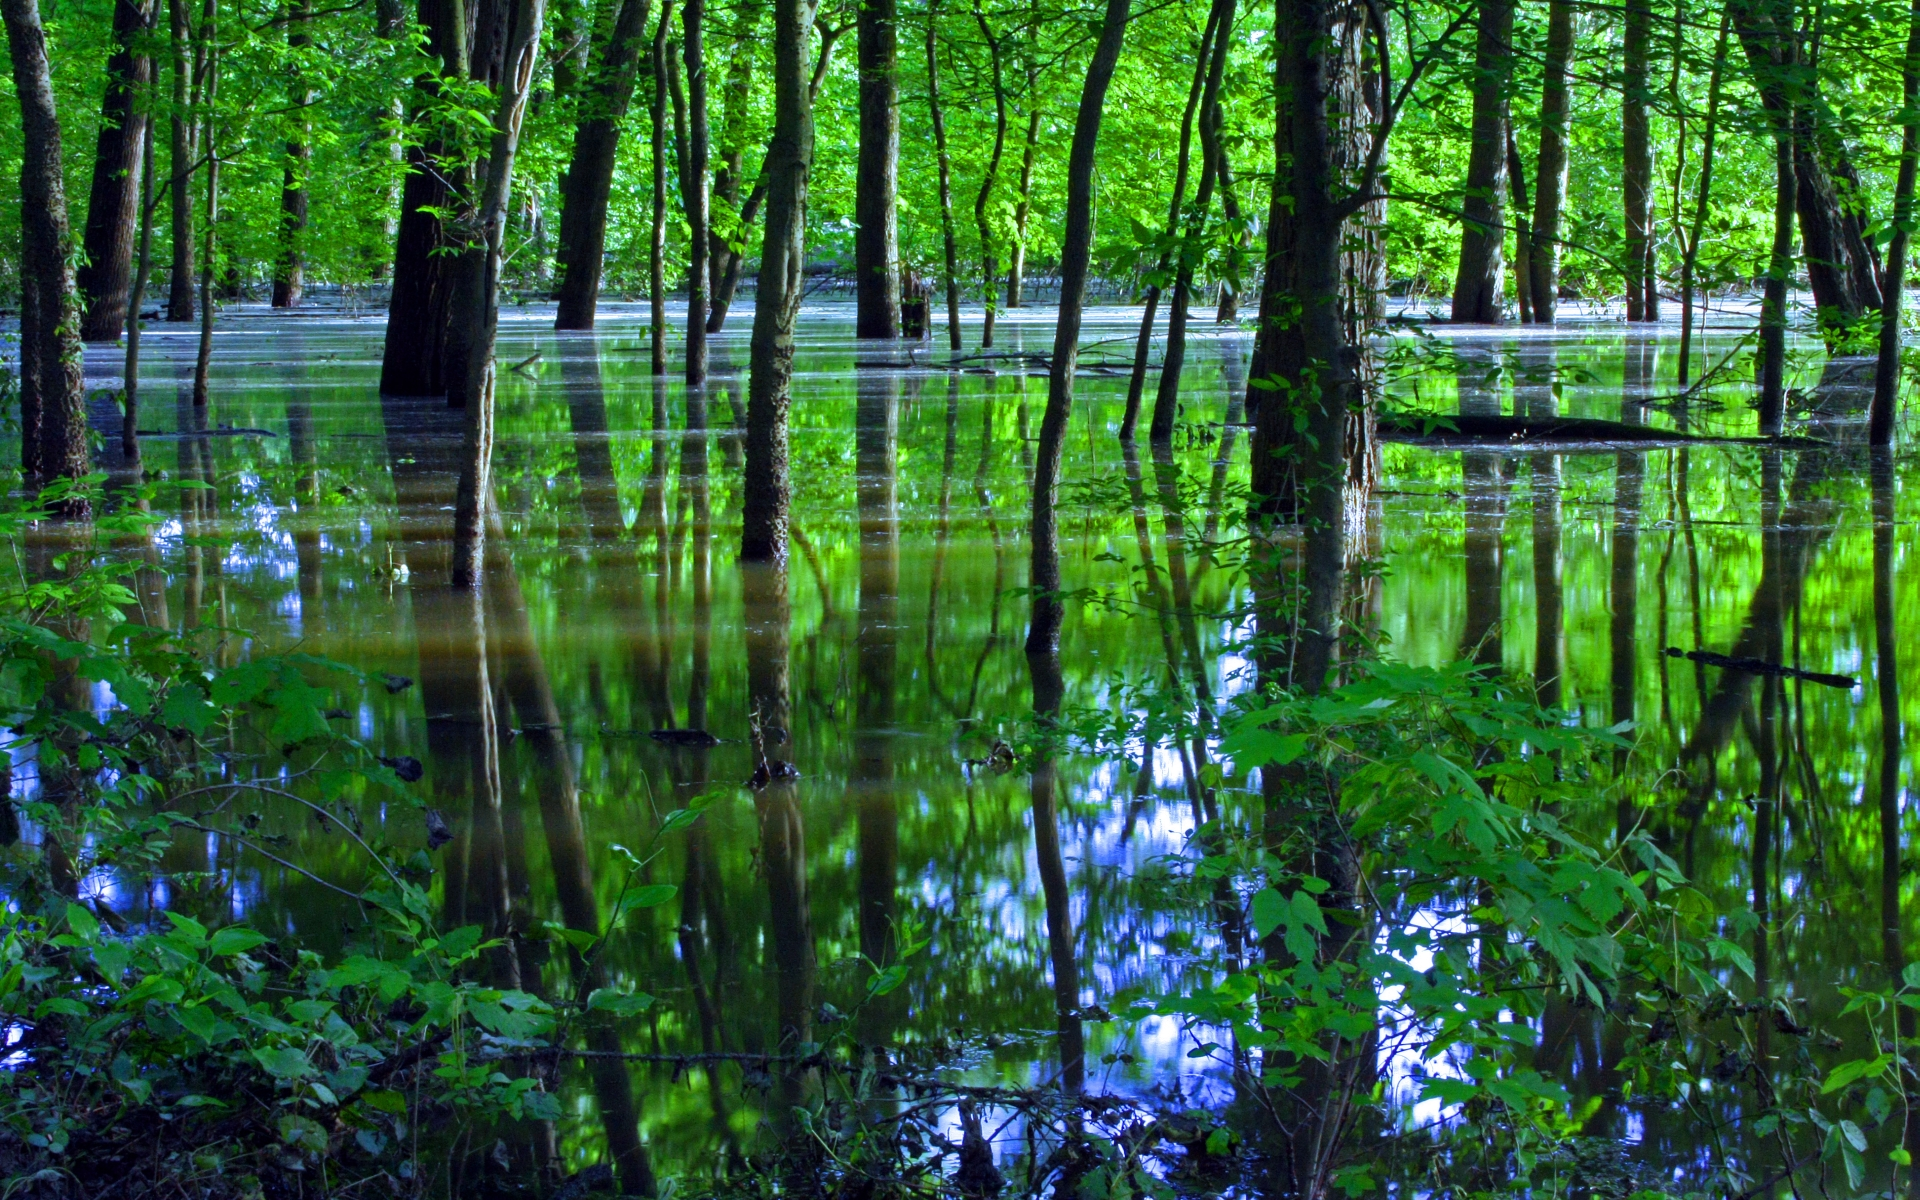 Swamp Computer Wallpaper Desktop Background 1920x1200 1920x1200